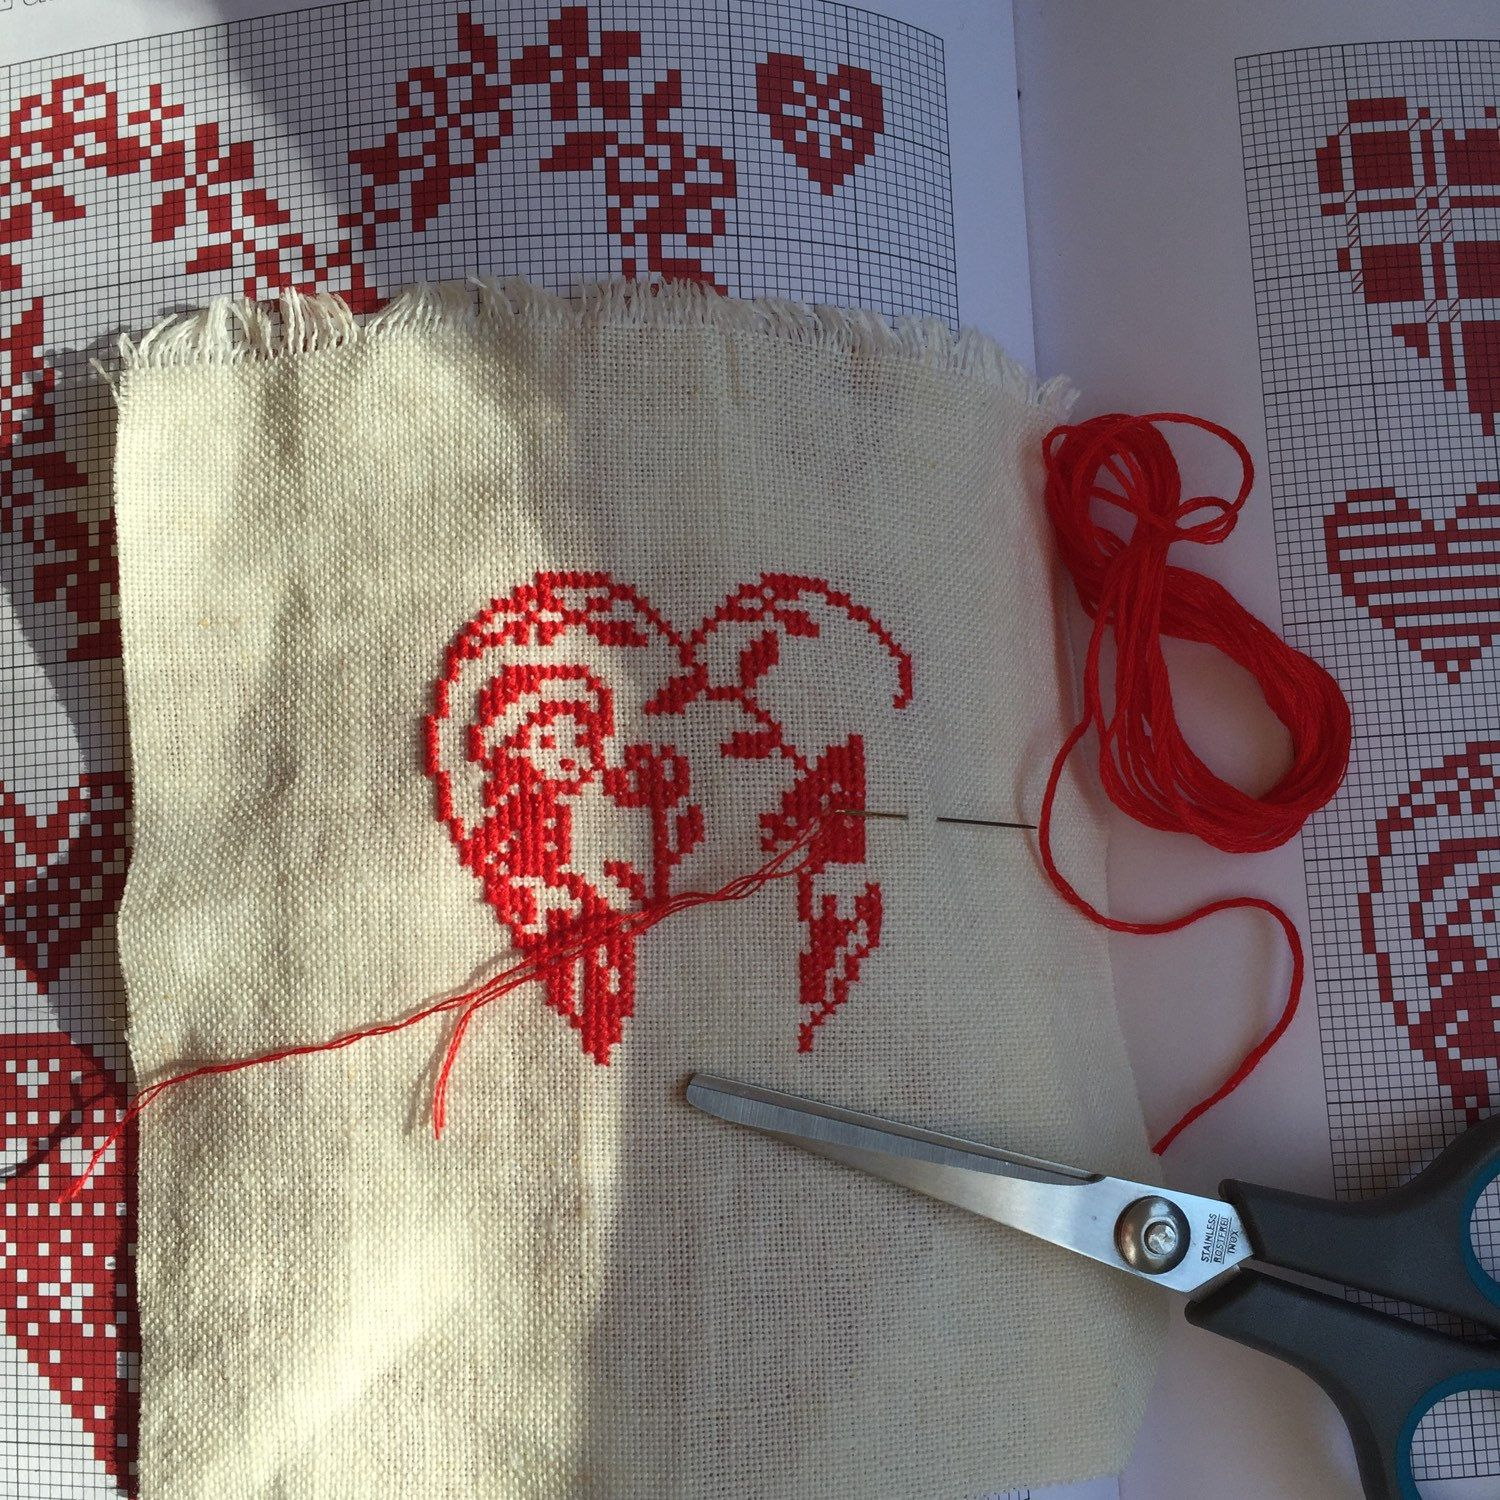 Cross stitch love heart: work in progress!